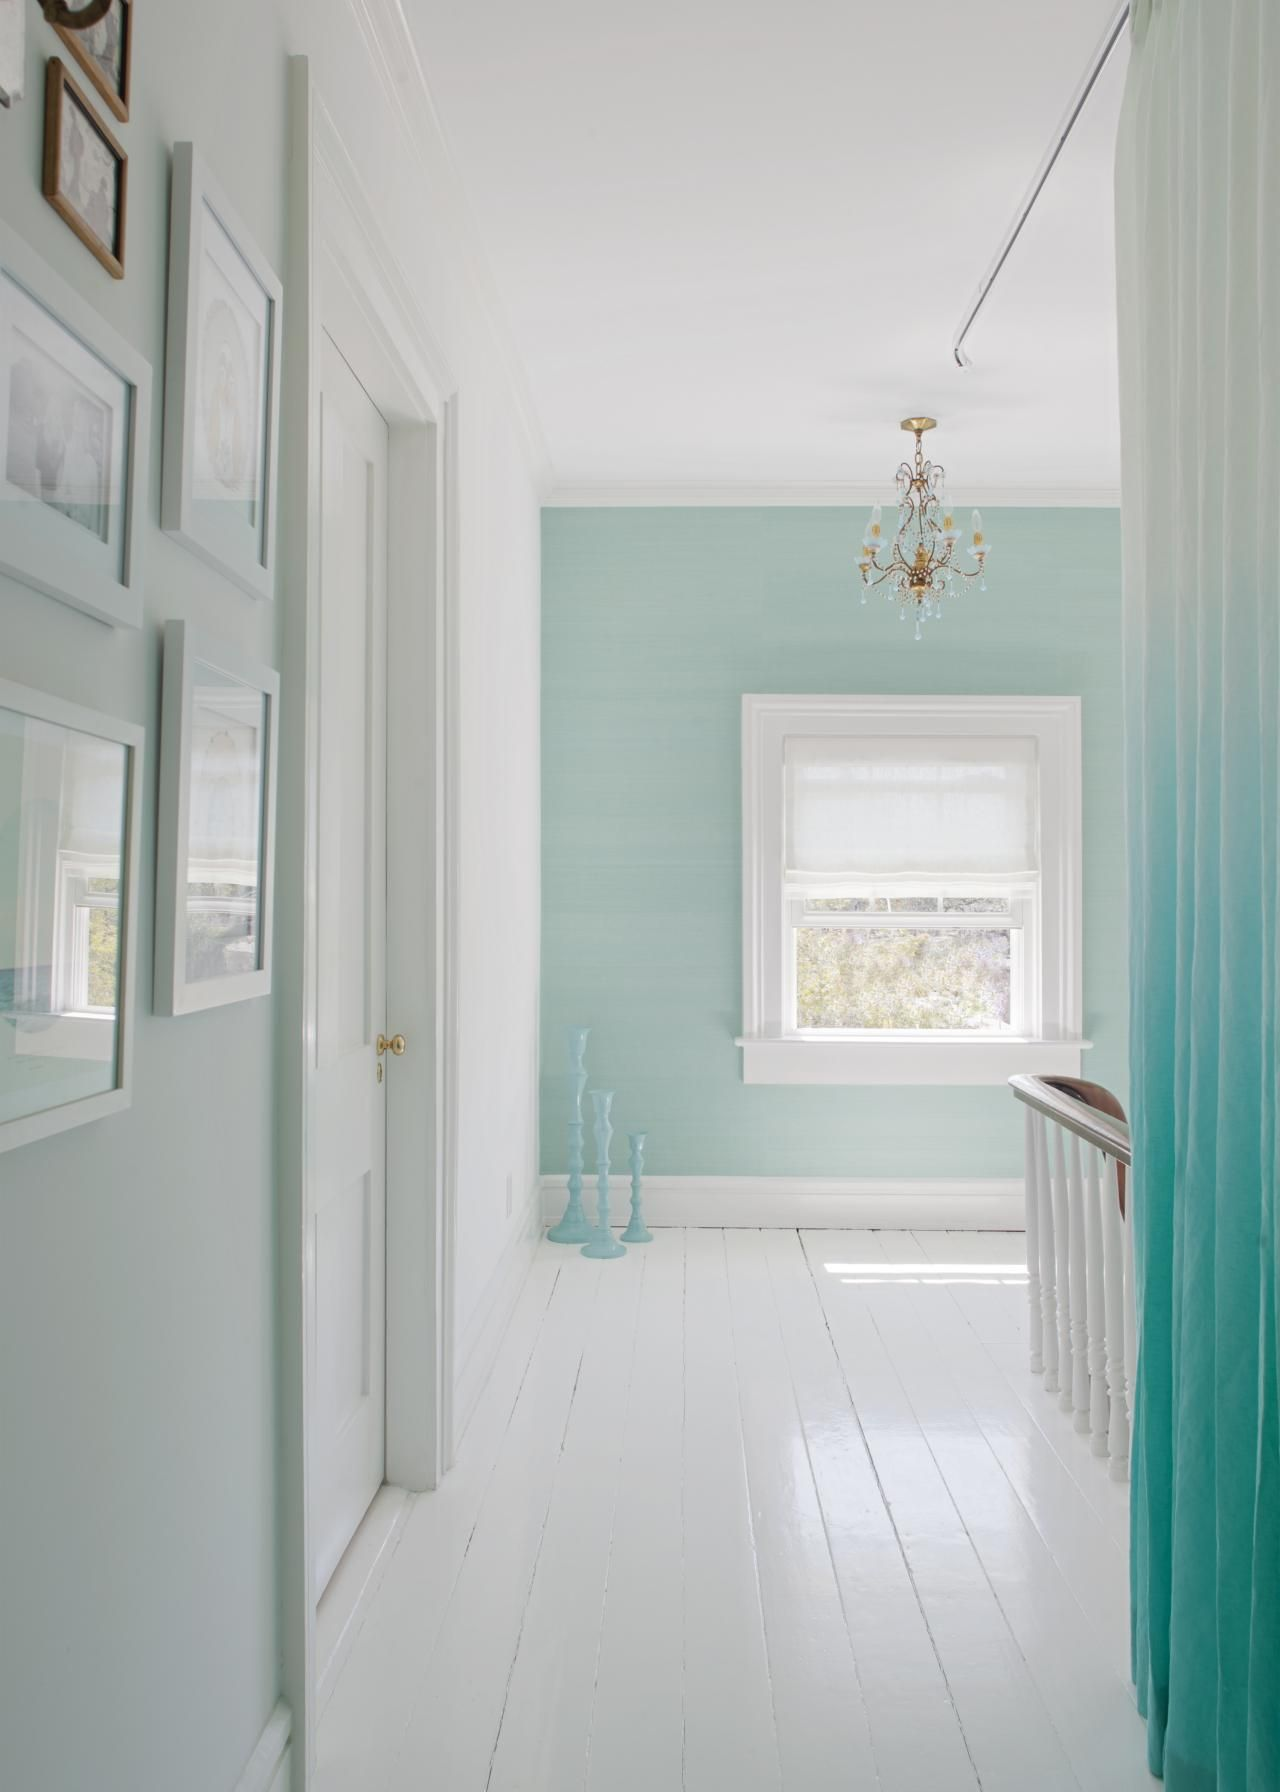 Home decorating colour schemes with aqua.